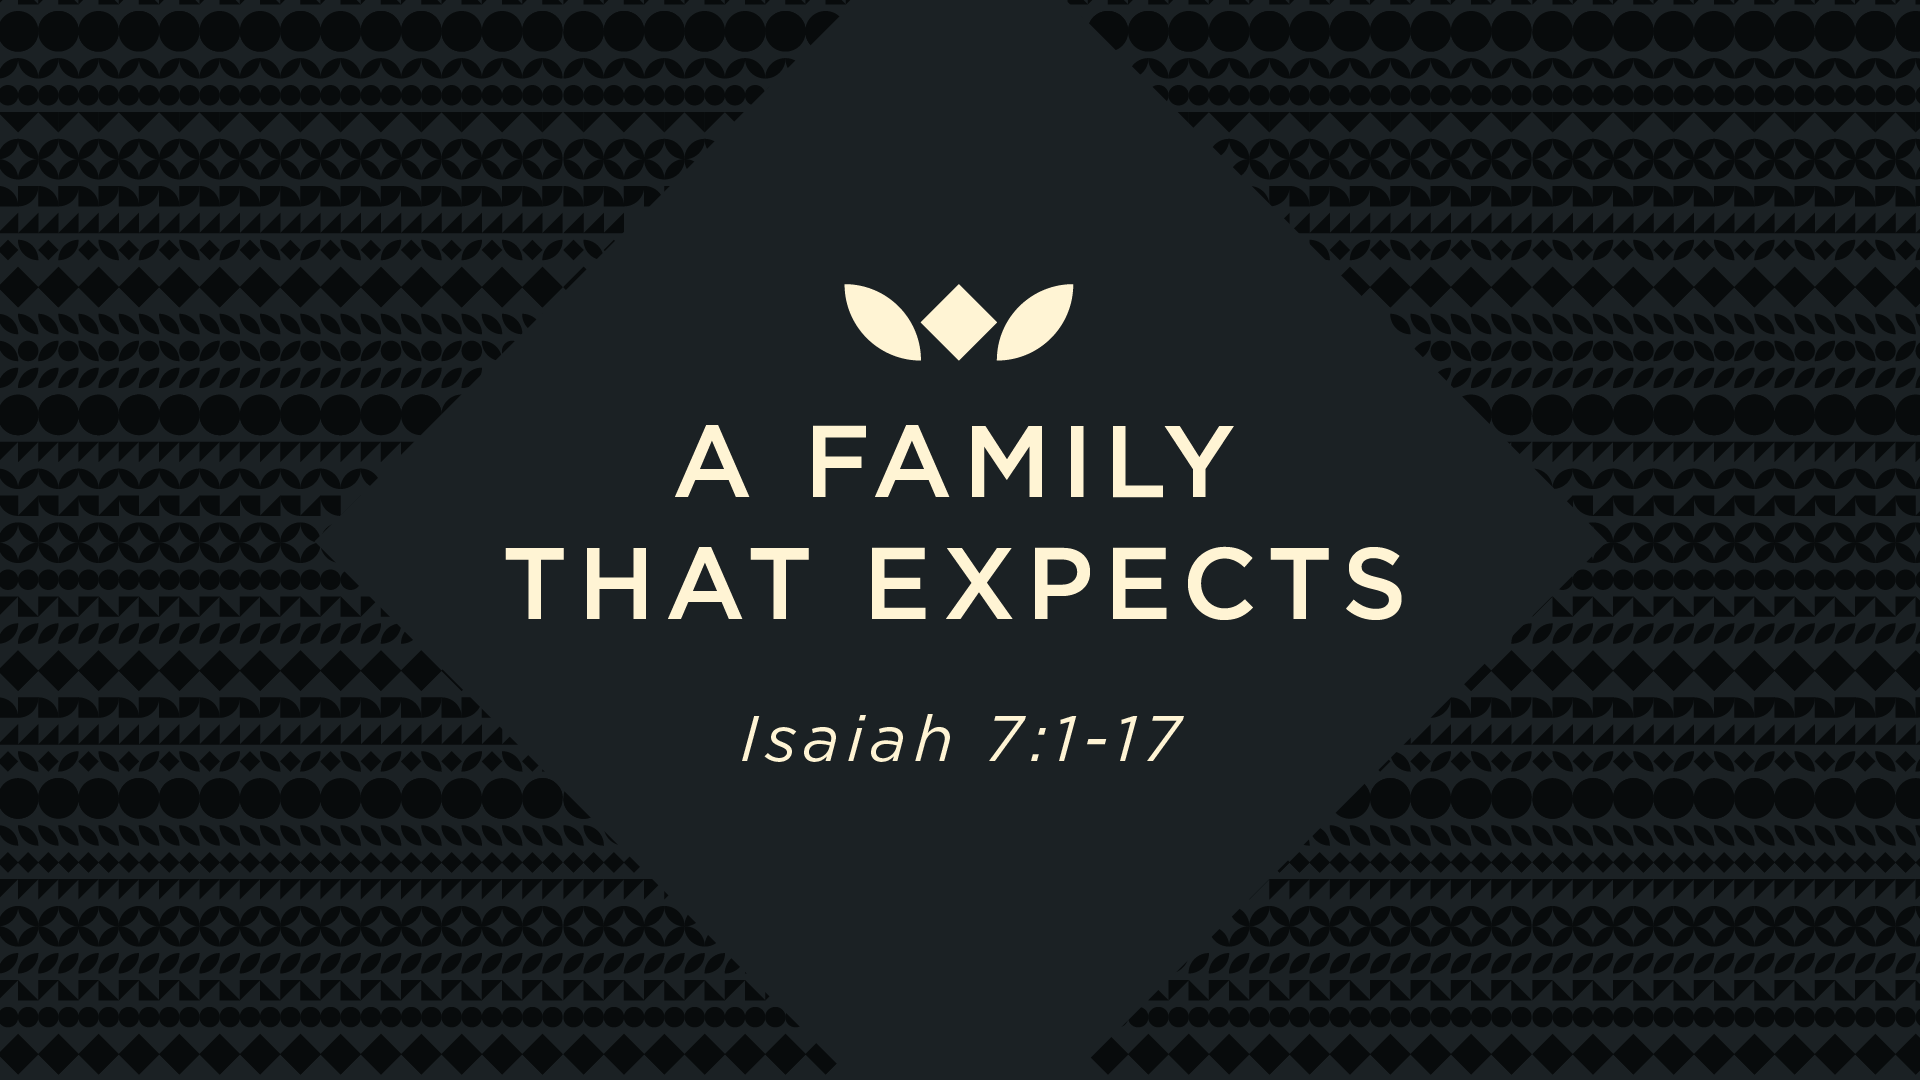 A Family That Expects